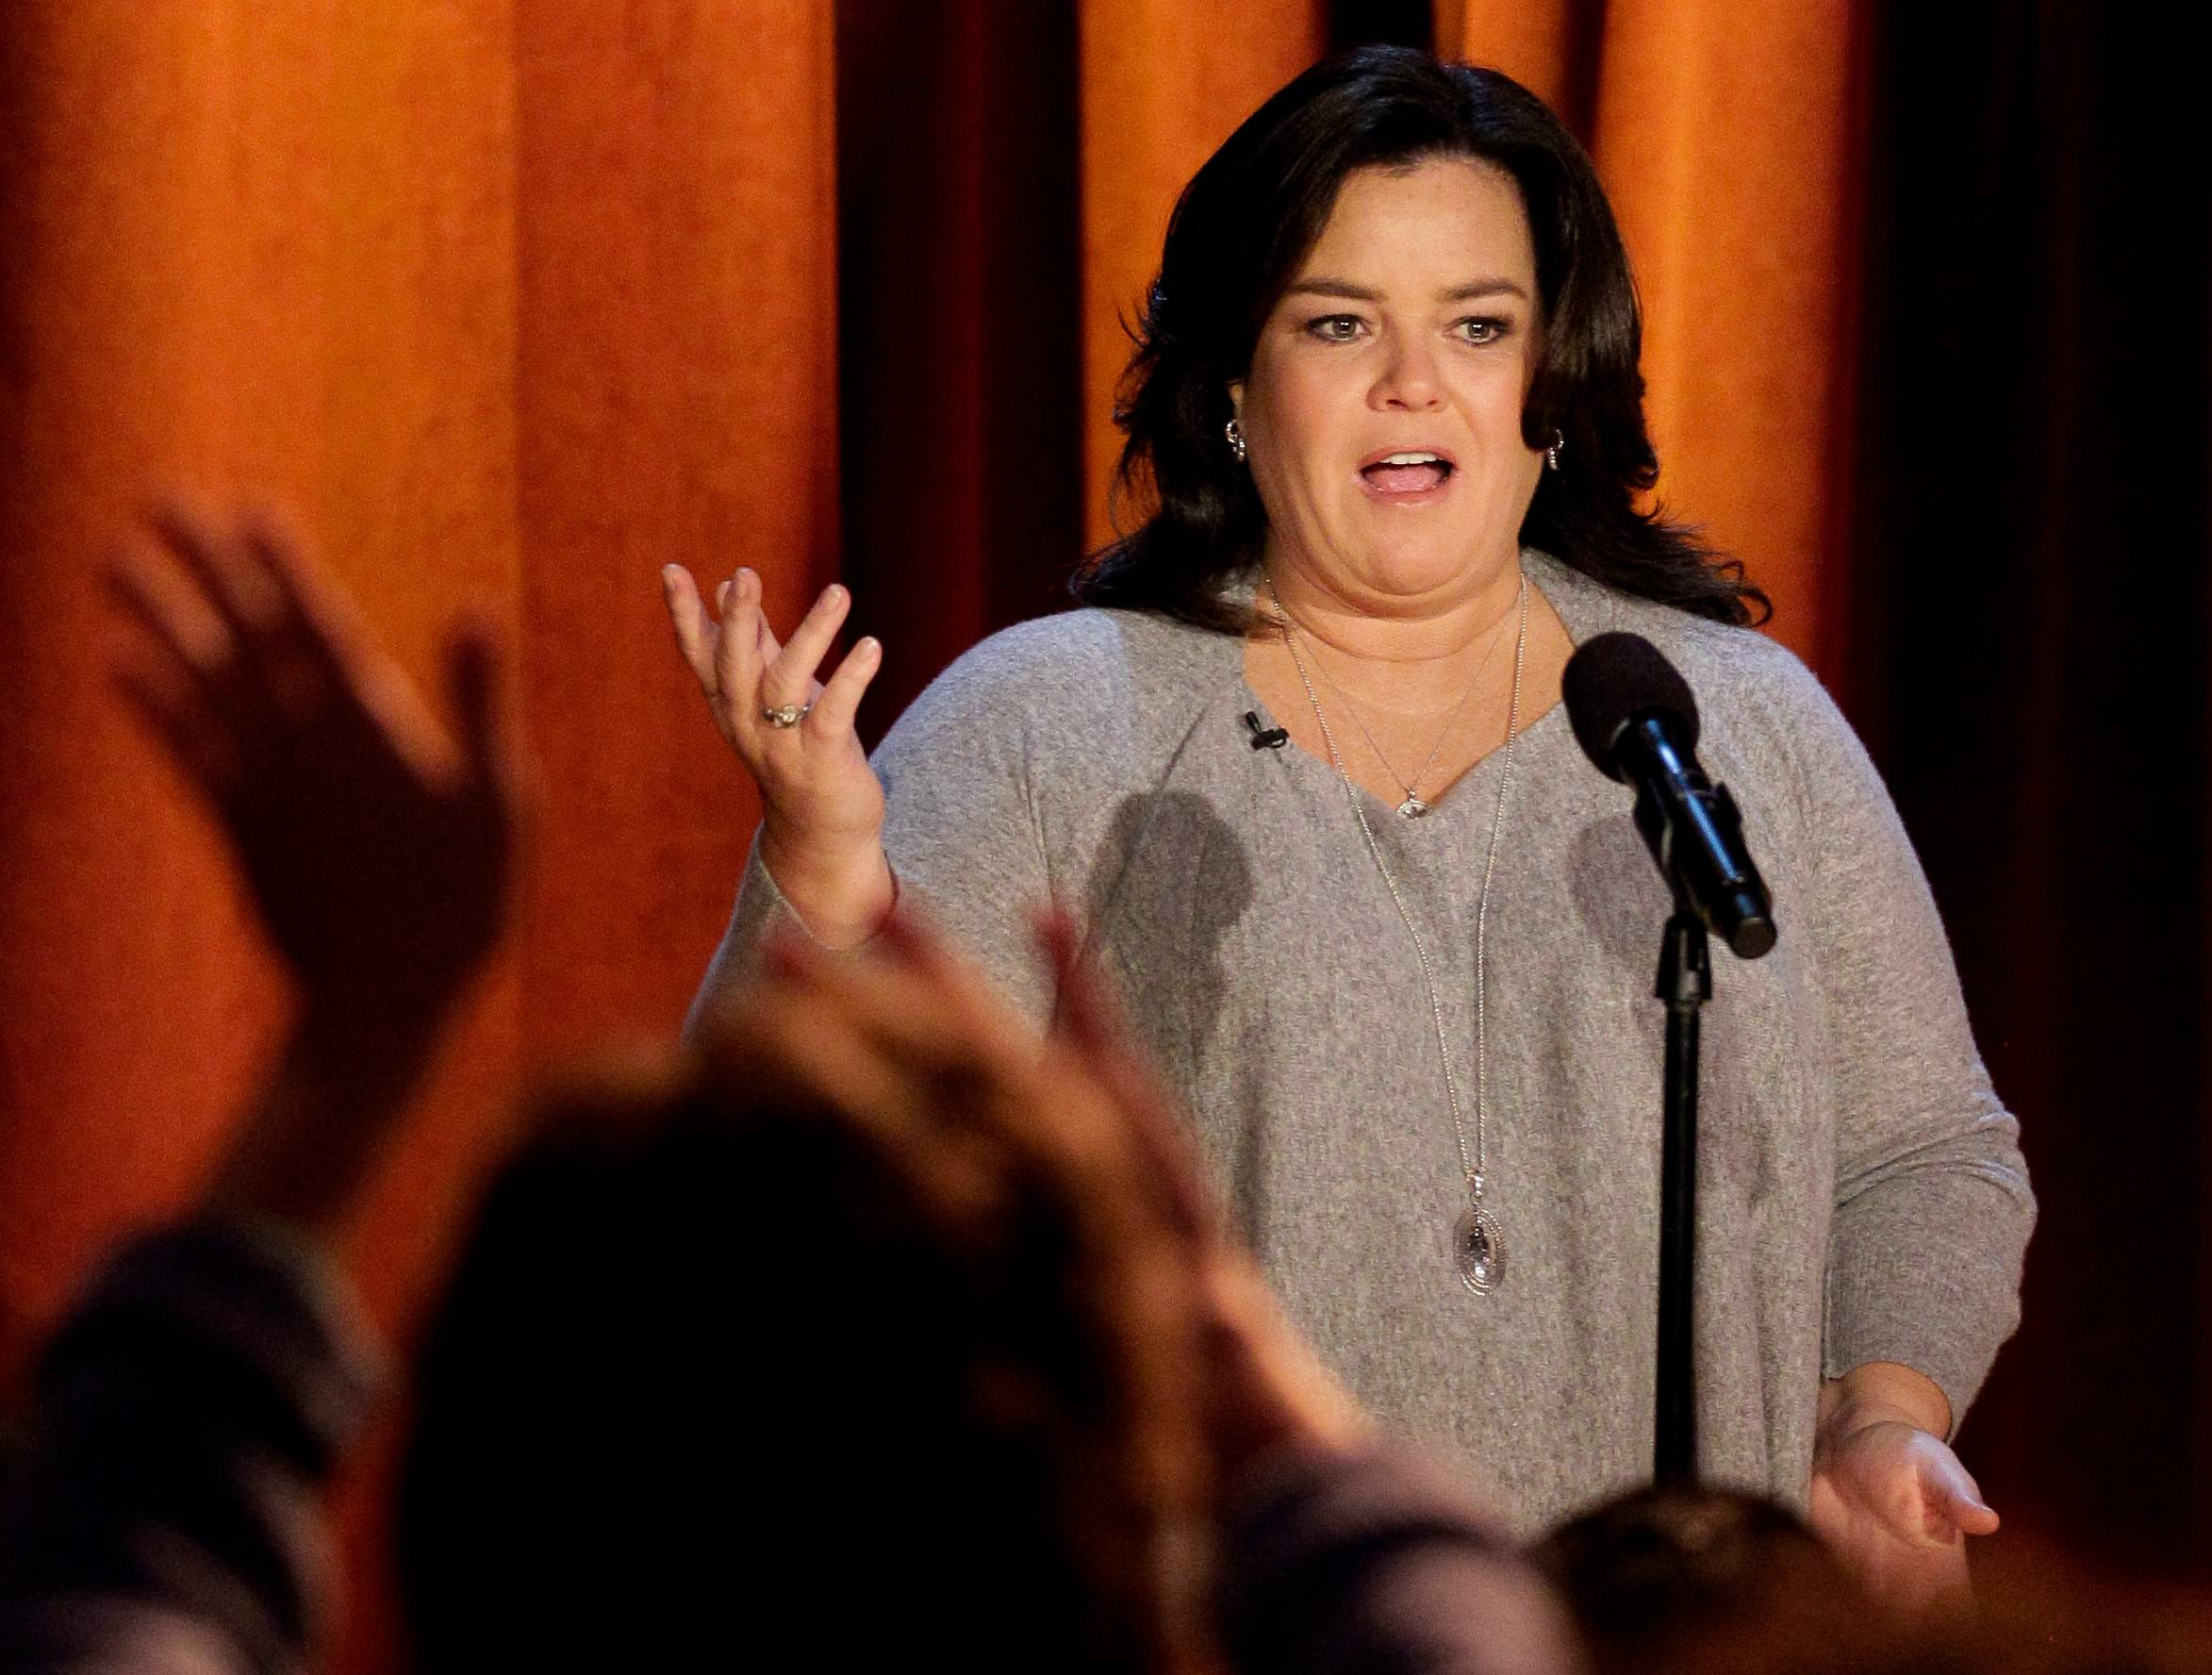 Rosie O'Donnell responds to Trump on Twitter